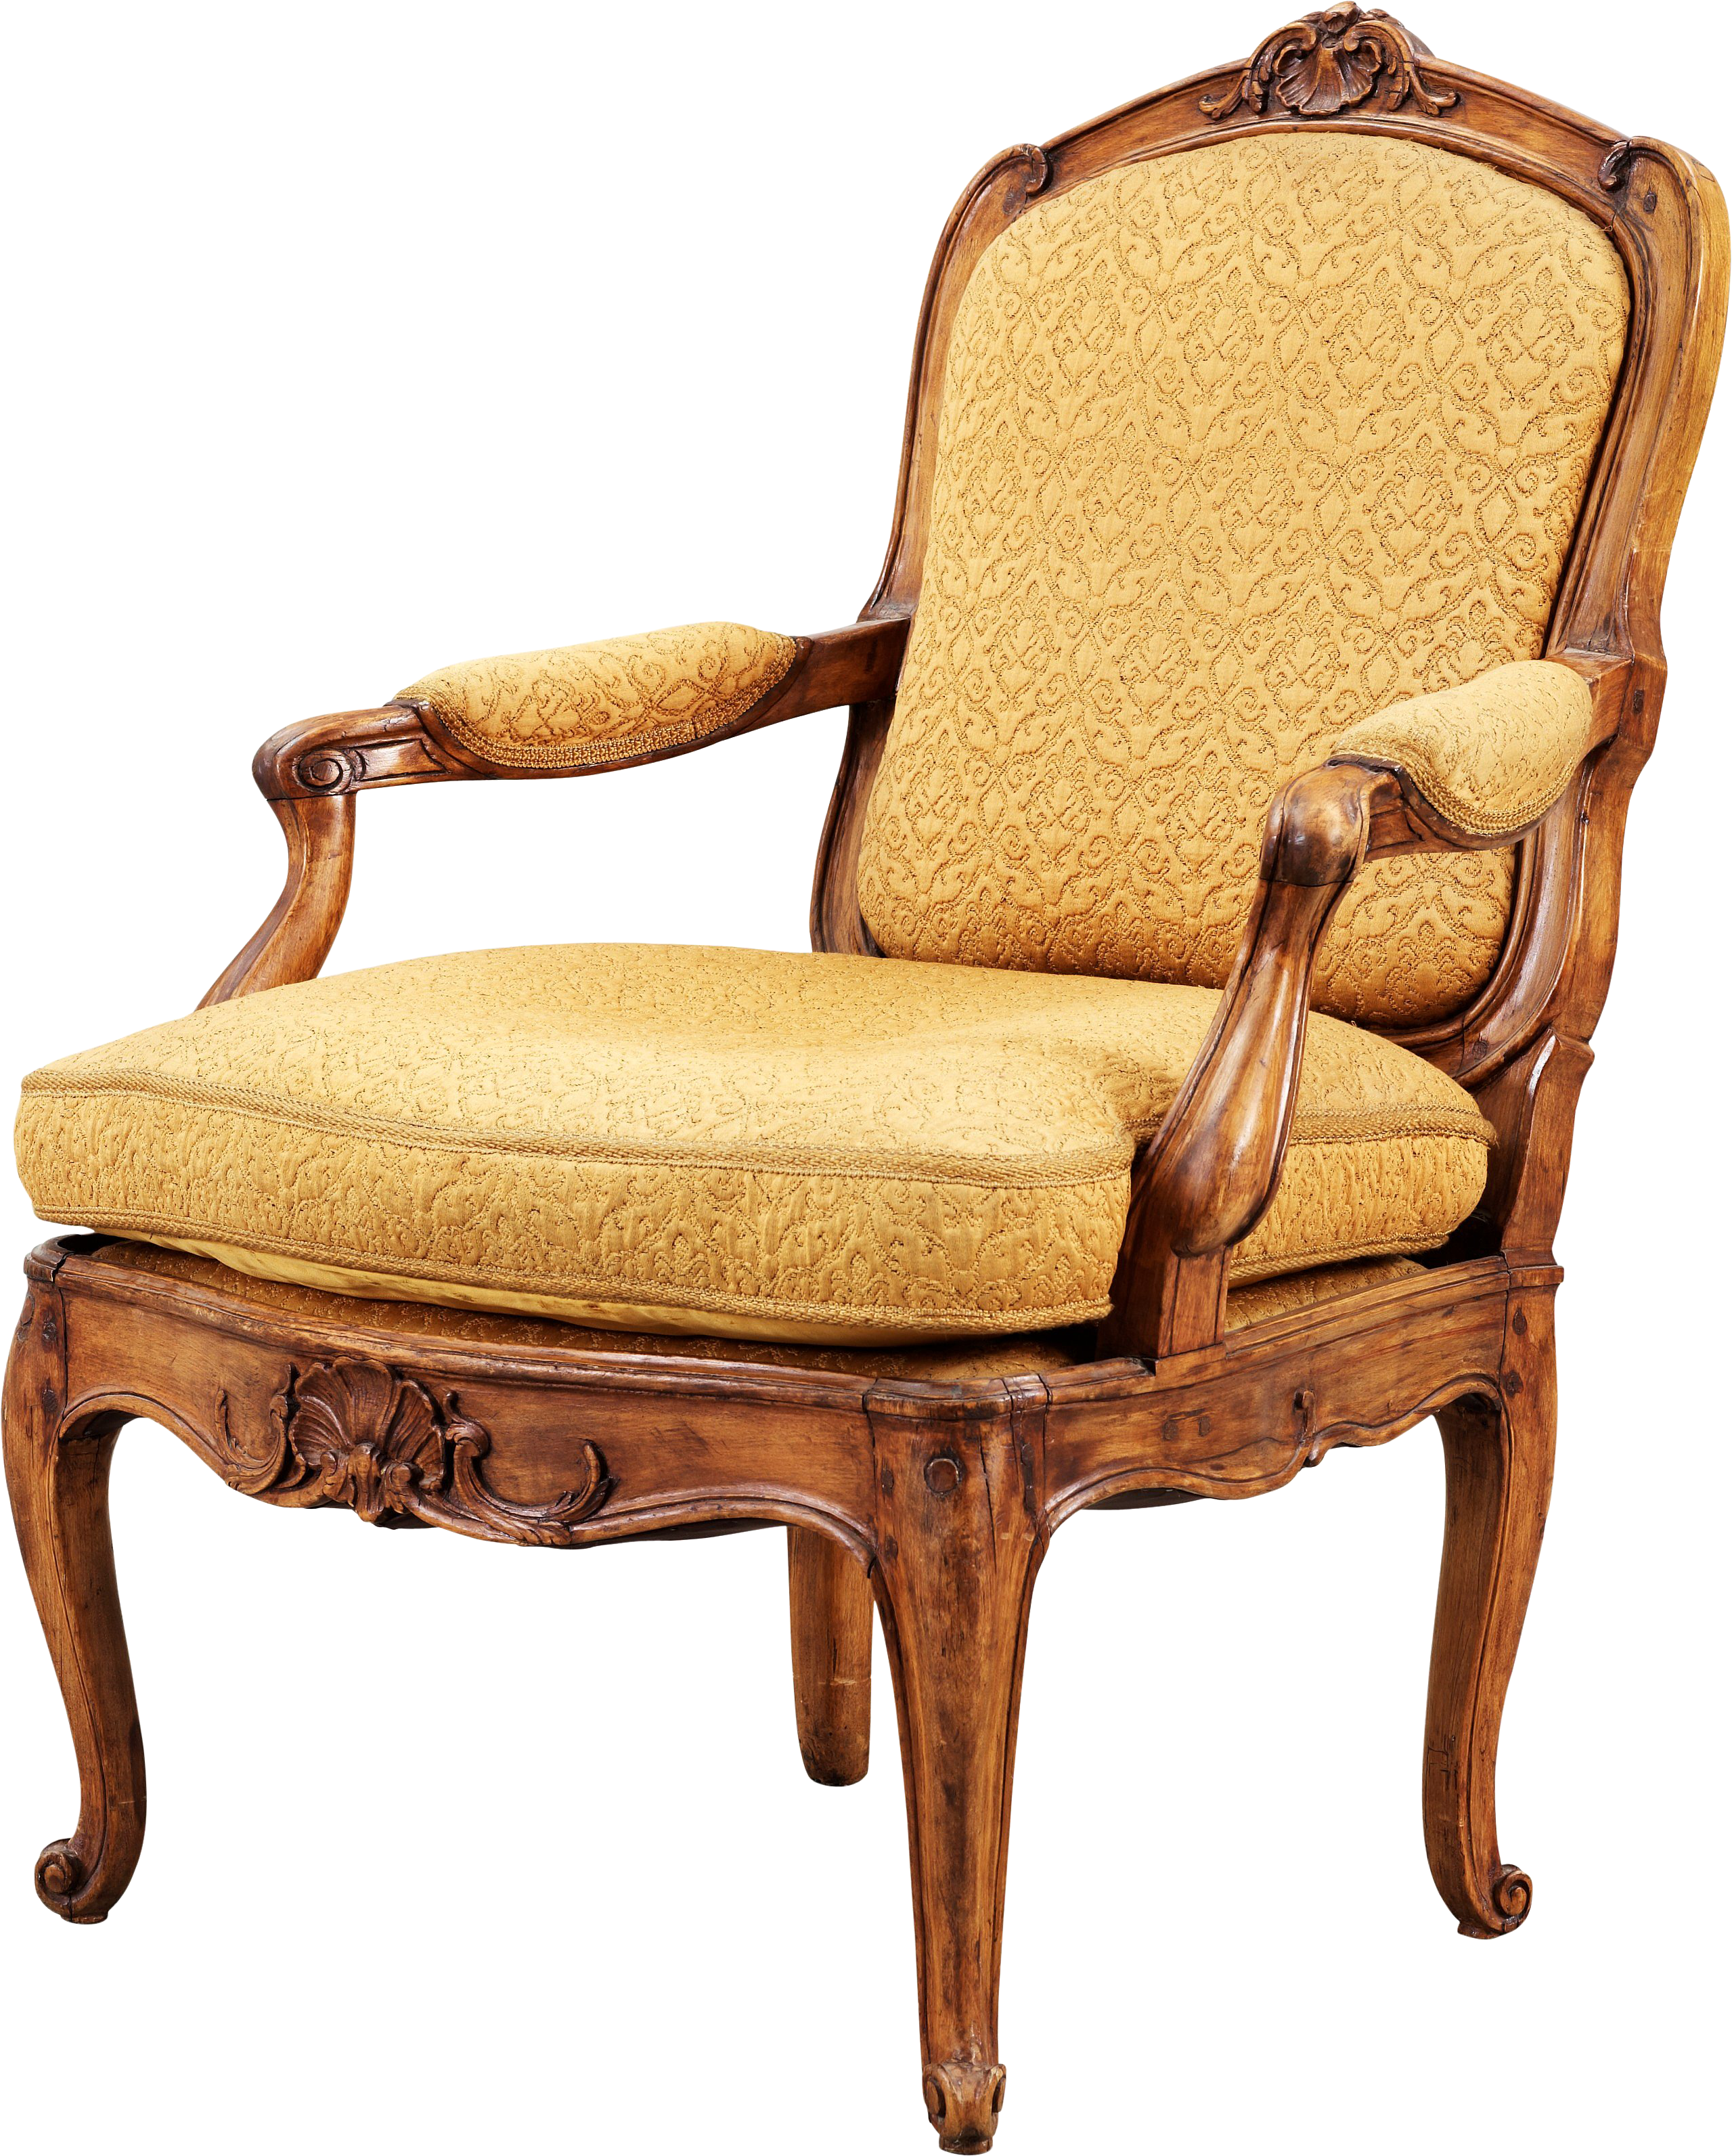 Download Png Image Armchair Png Image Armchair Chair Old Chairs